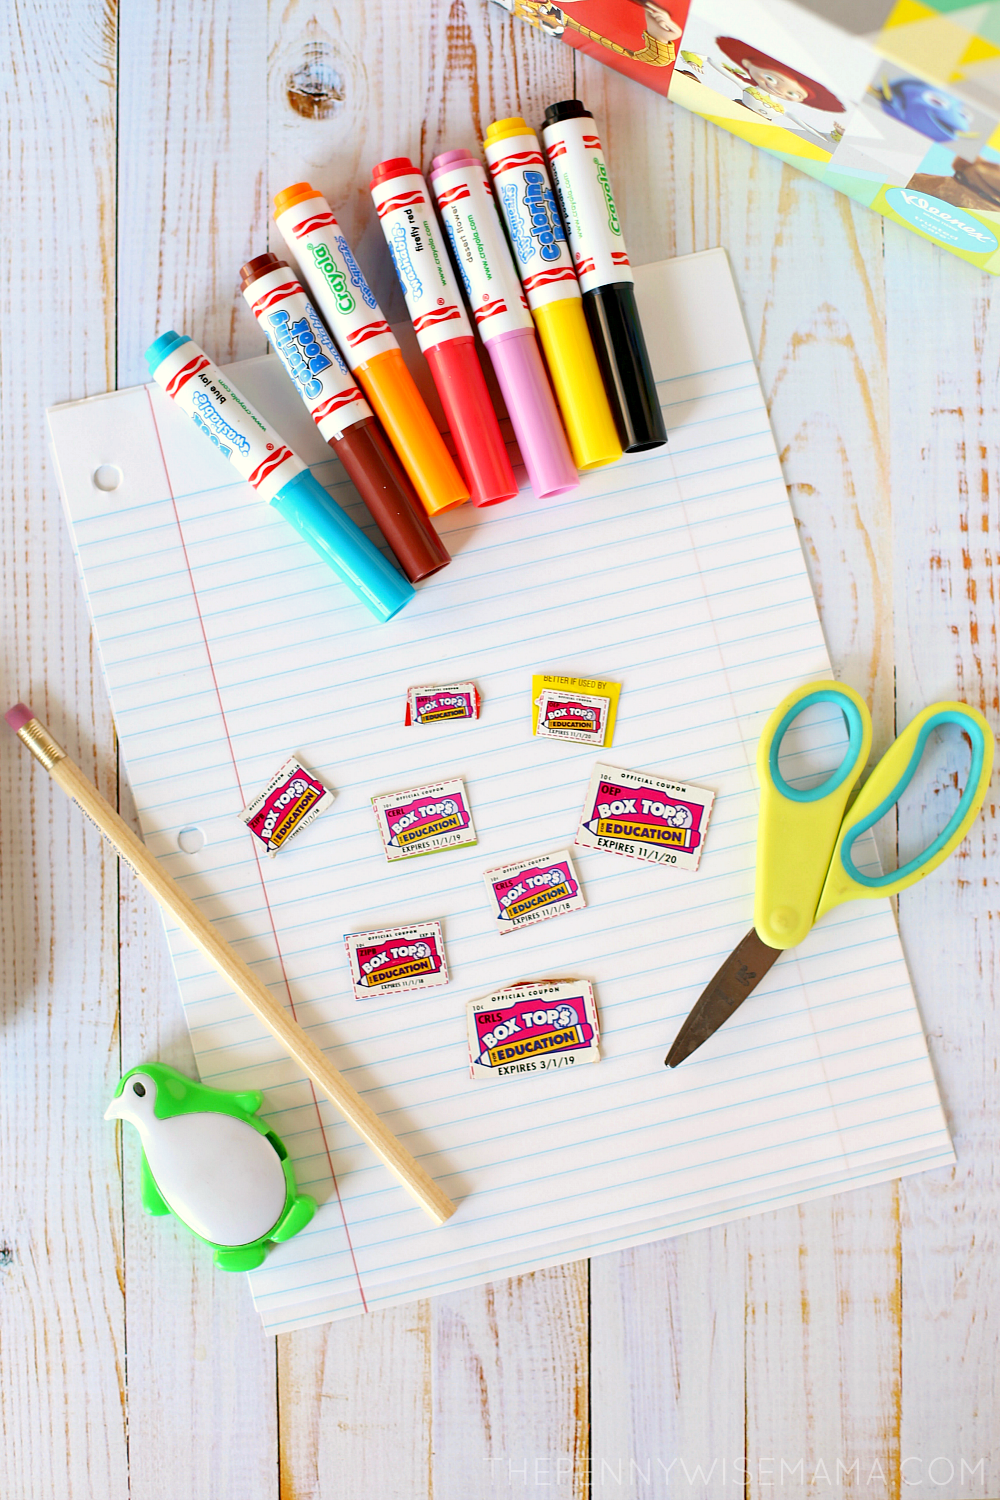 5 Ways to Earn More Box Tops for Your School